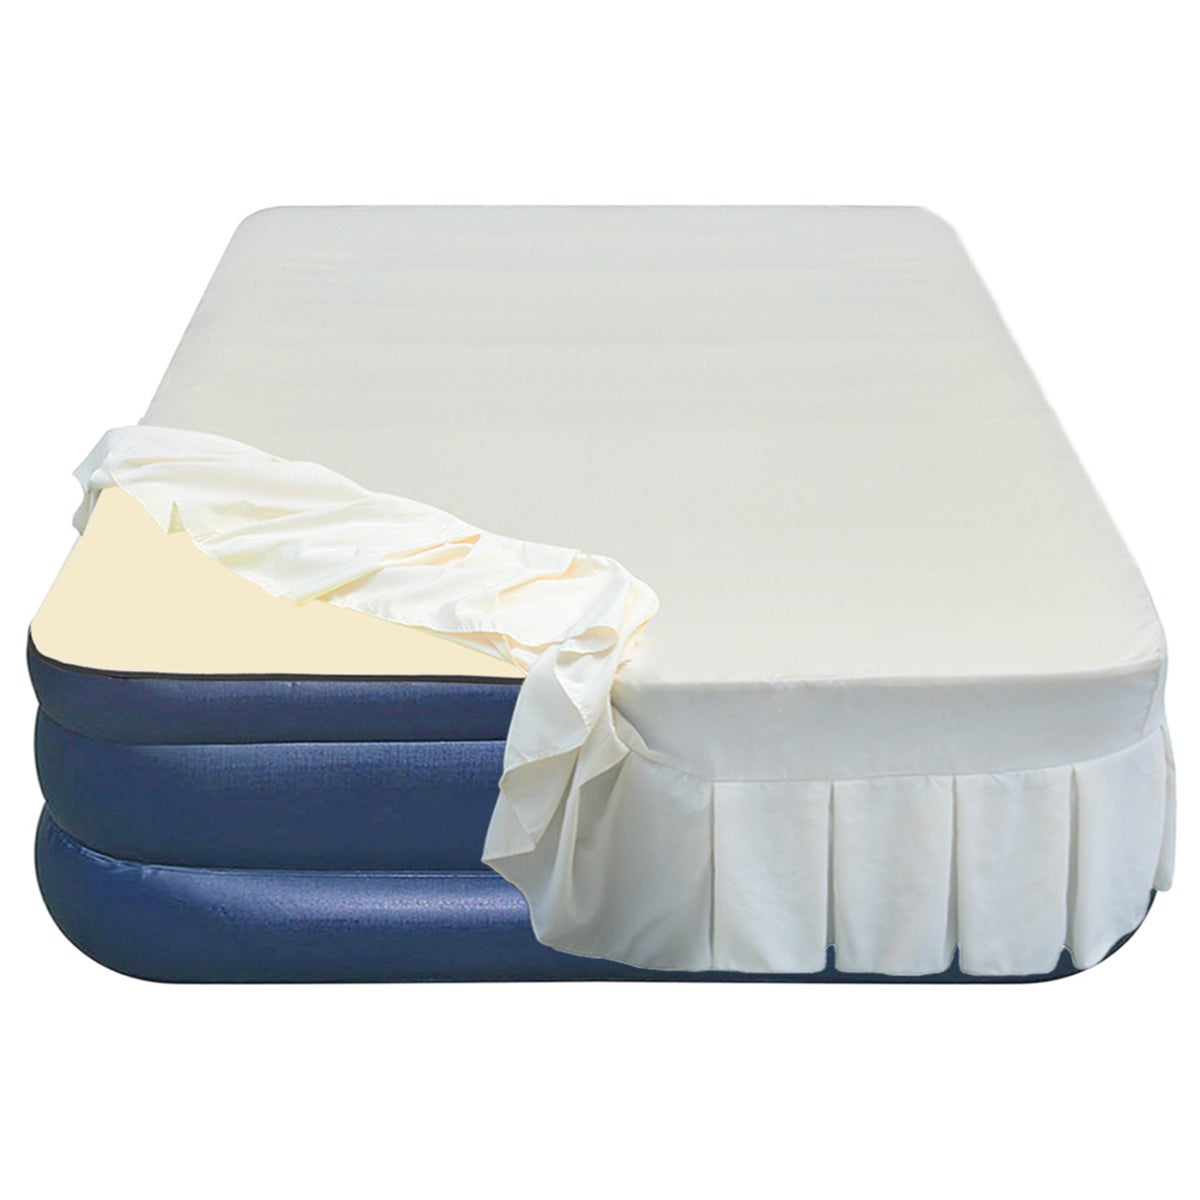 81f837bb3da Buy Raised Air Mattresses   Inflatable Air Beds Online at Overstock.com